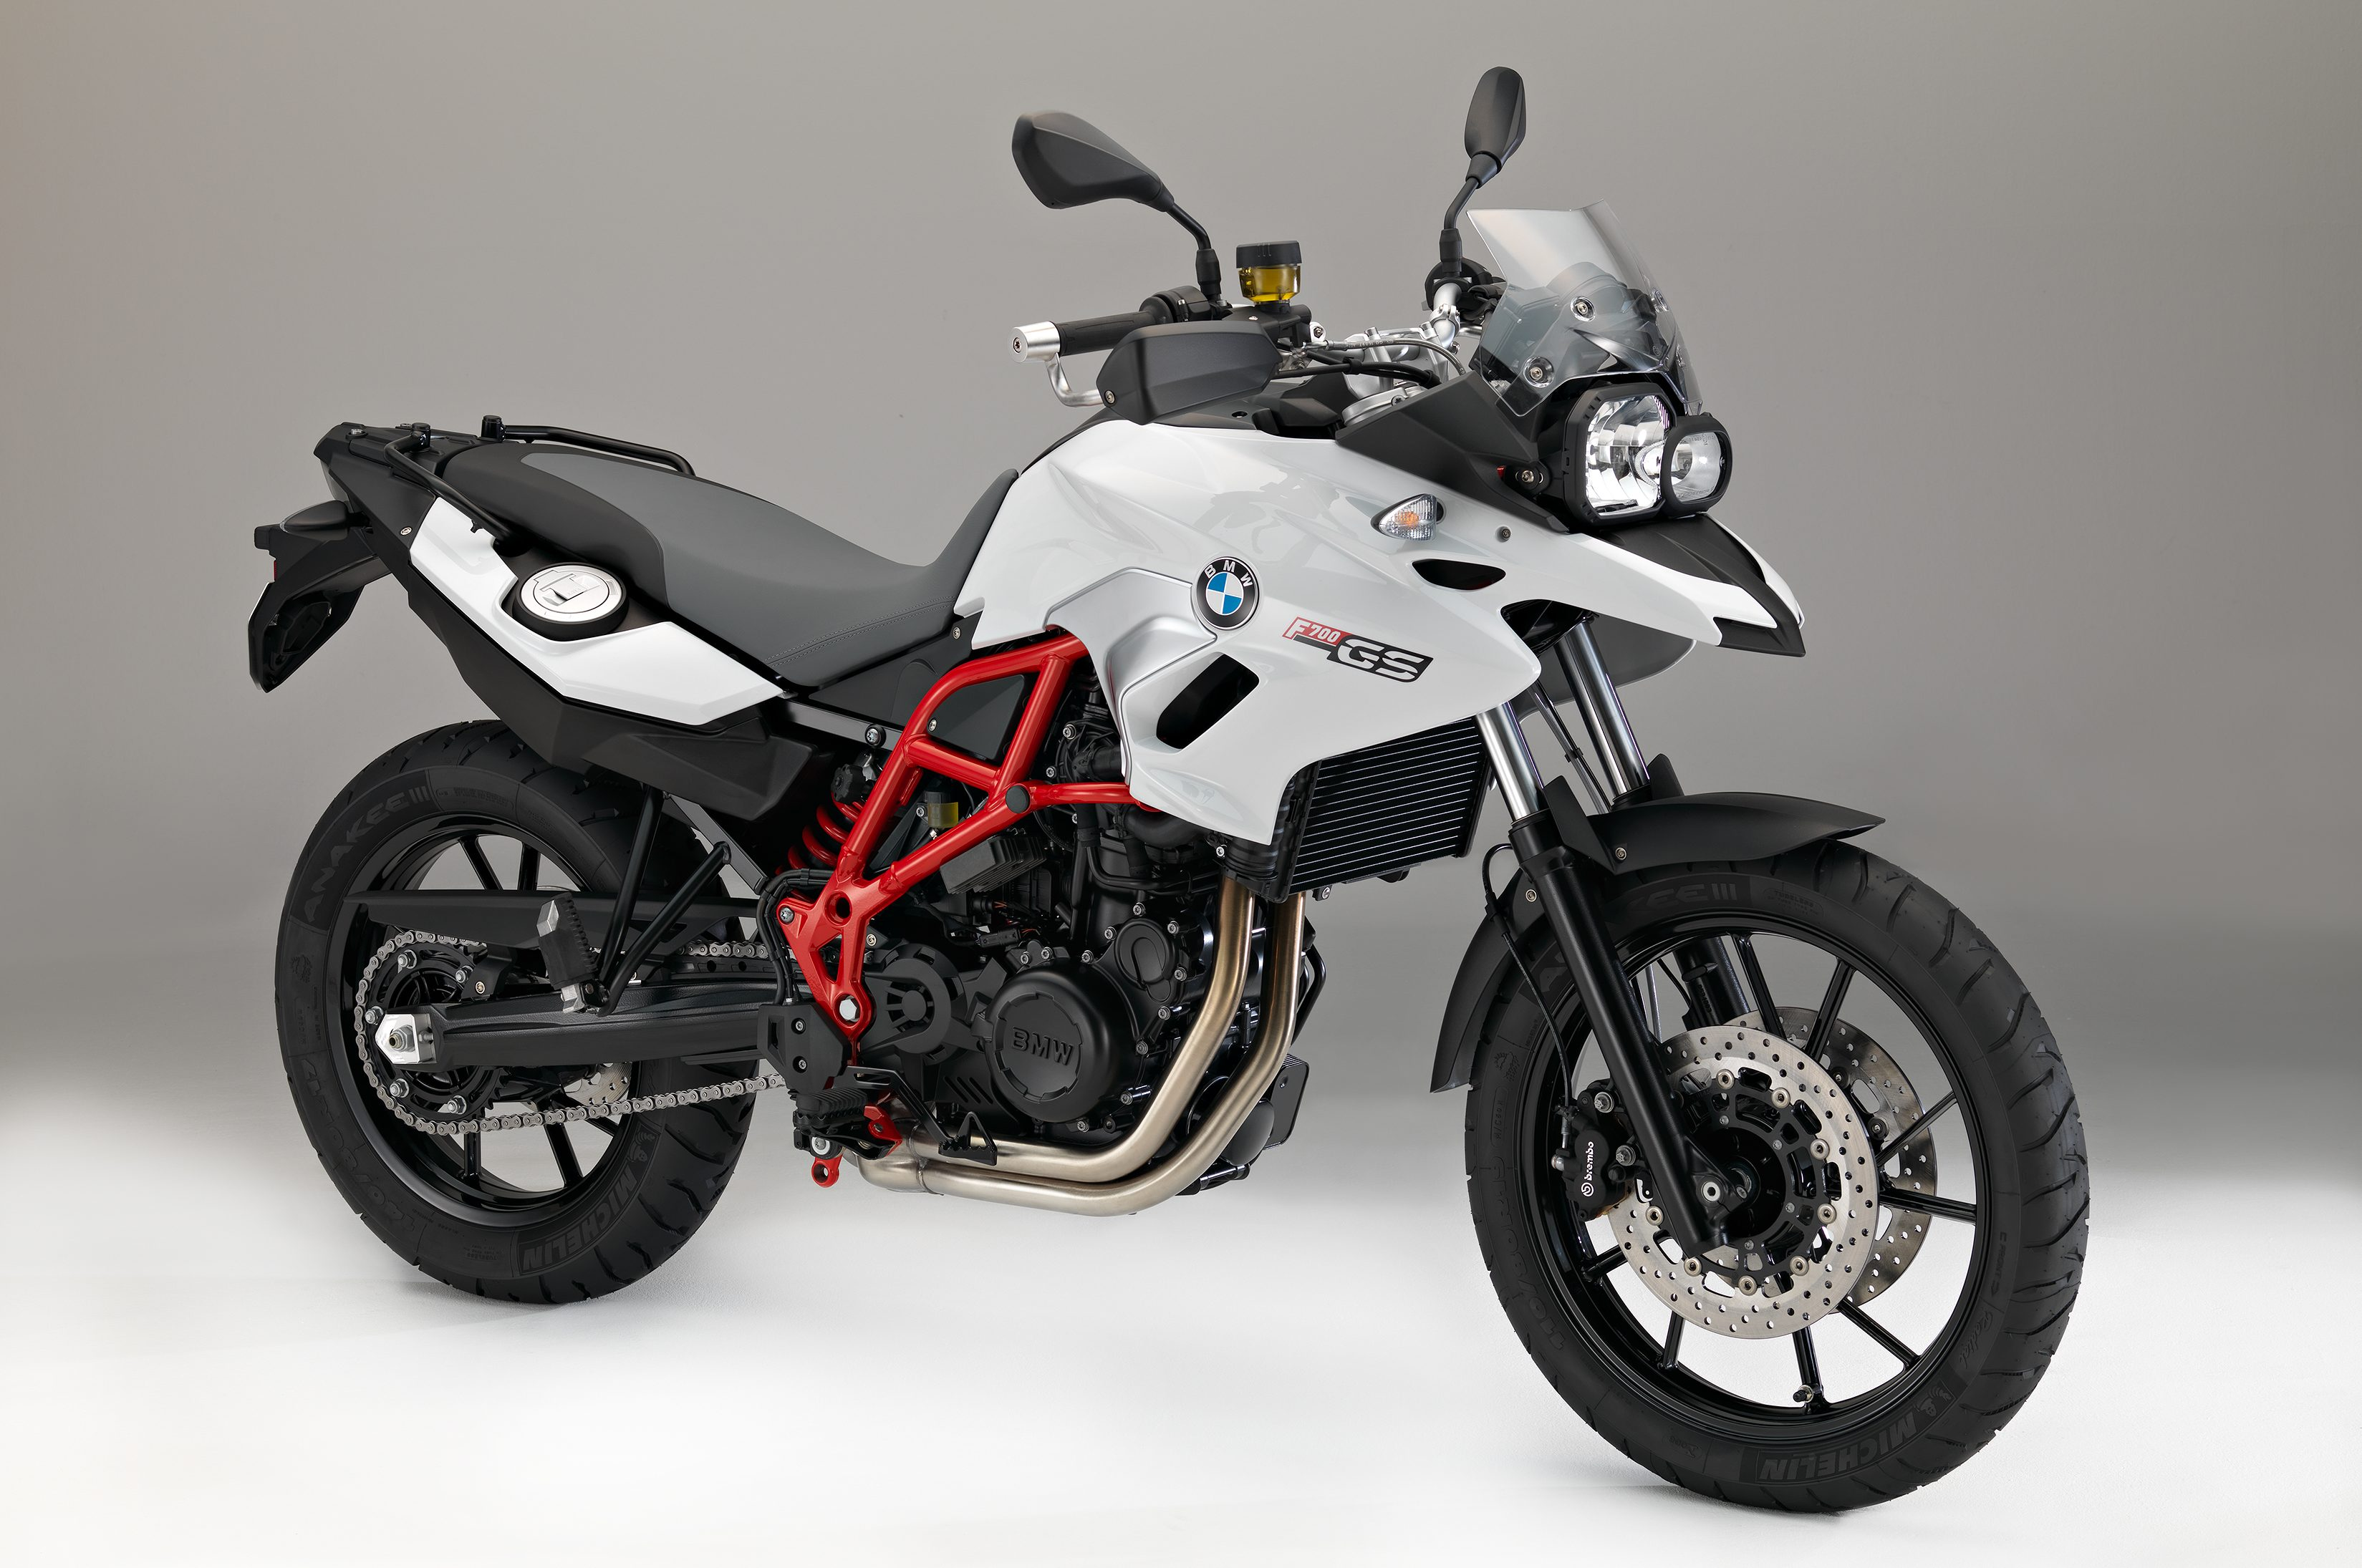 bmw motorrad uk confirms g310r adventure bike. Black Bedroom Furniture Sets. Home Design Ideas